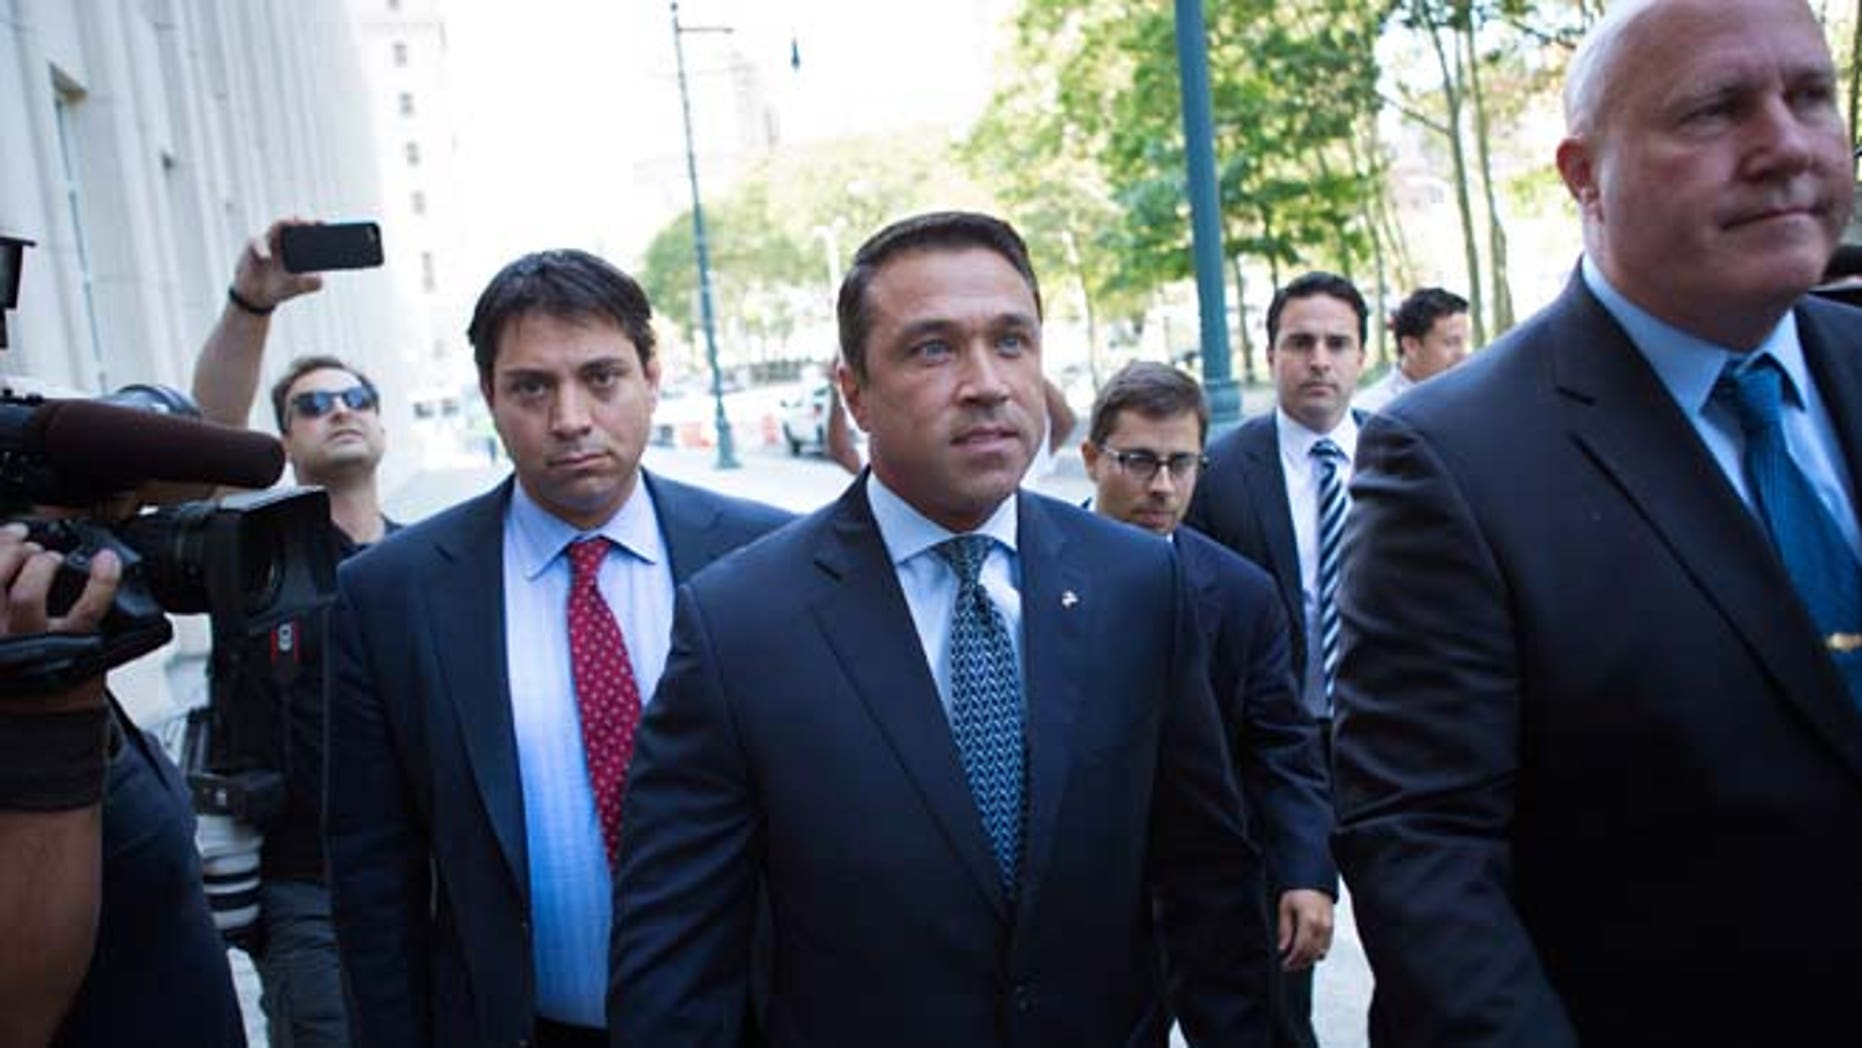 Former U.S. Rep. Michael Grimm, center, arrives ahead of his sentencing at federal court Friday, July 17, 2015, in the Brooklyn borough of New York.  Grimm pleaded guilty late last year to aiding in filing a false tax return, a charge that stemmed from an investigation into the Staten Island Republican's campaign financing. (AP Photo/Kevin Hagen)